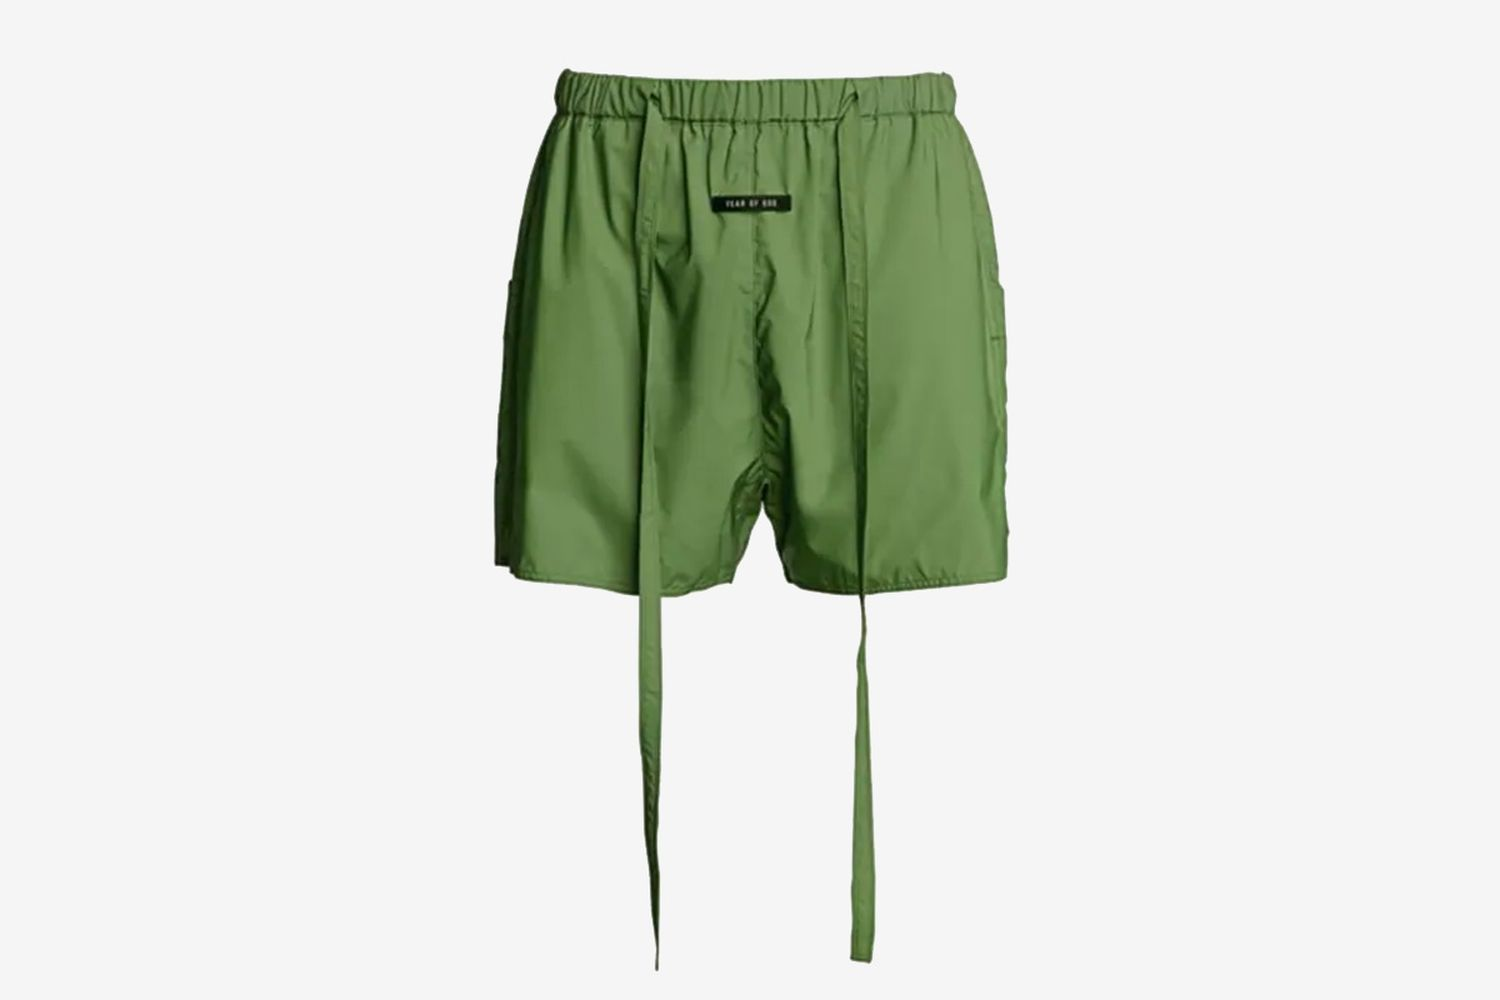 Military Physical Training Shorts